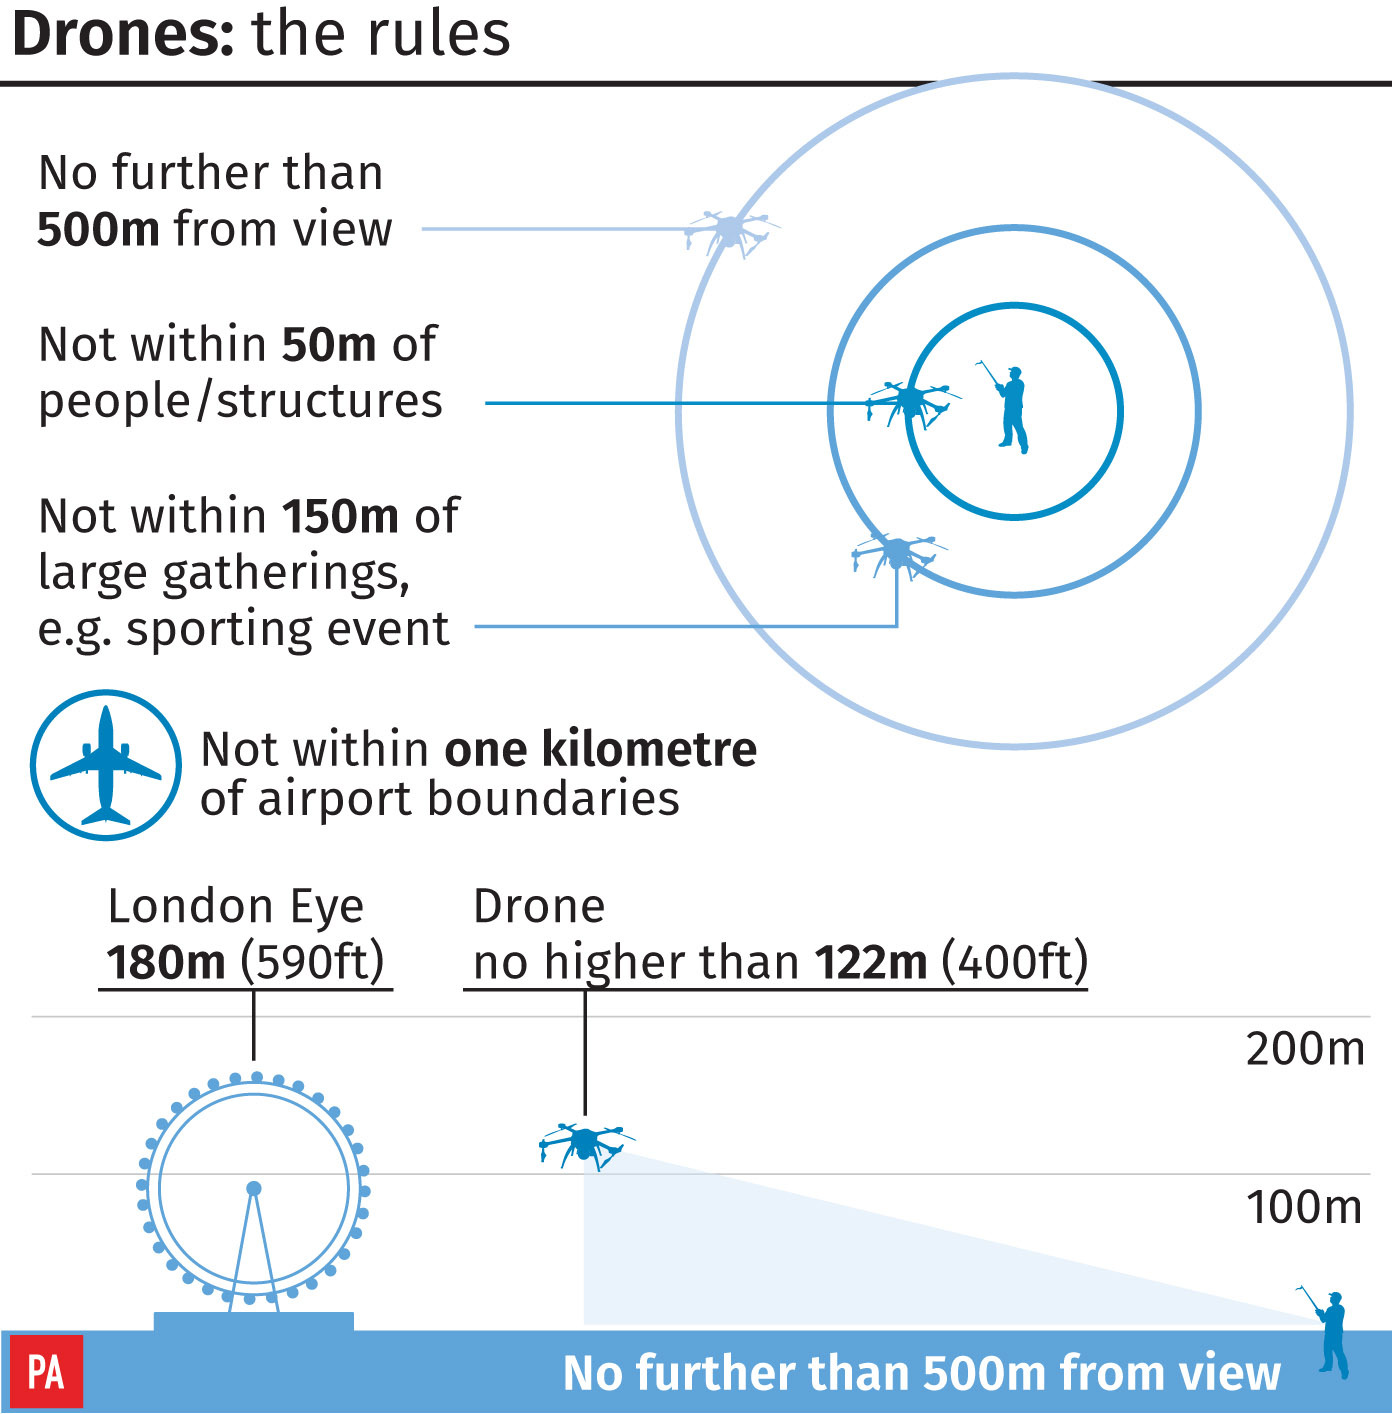 Drone sighting temporarily halted departures at Heathrow Airport in London